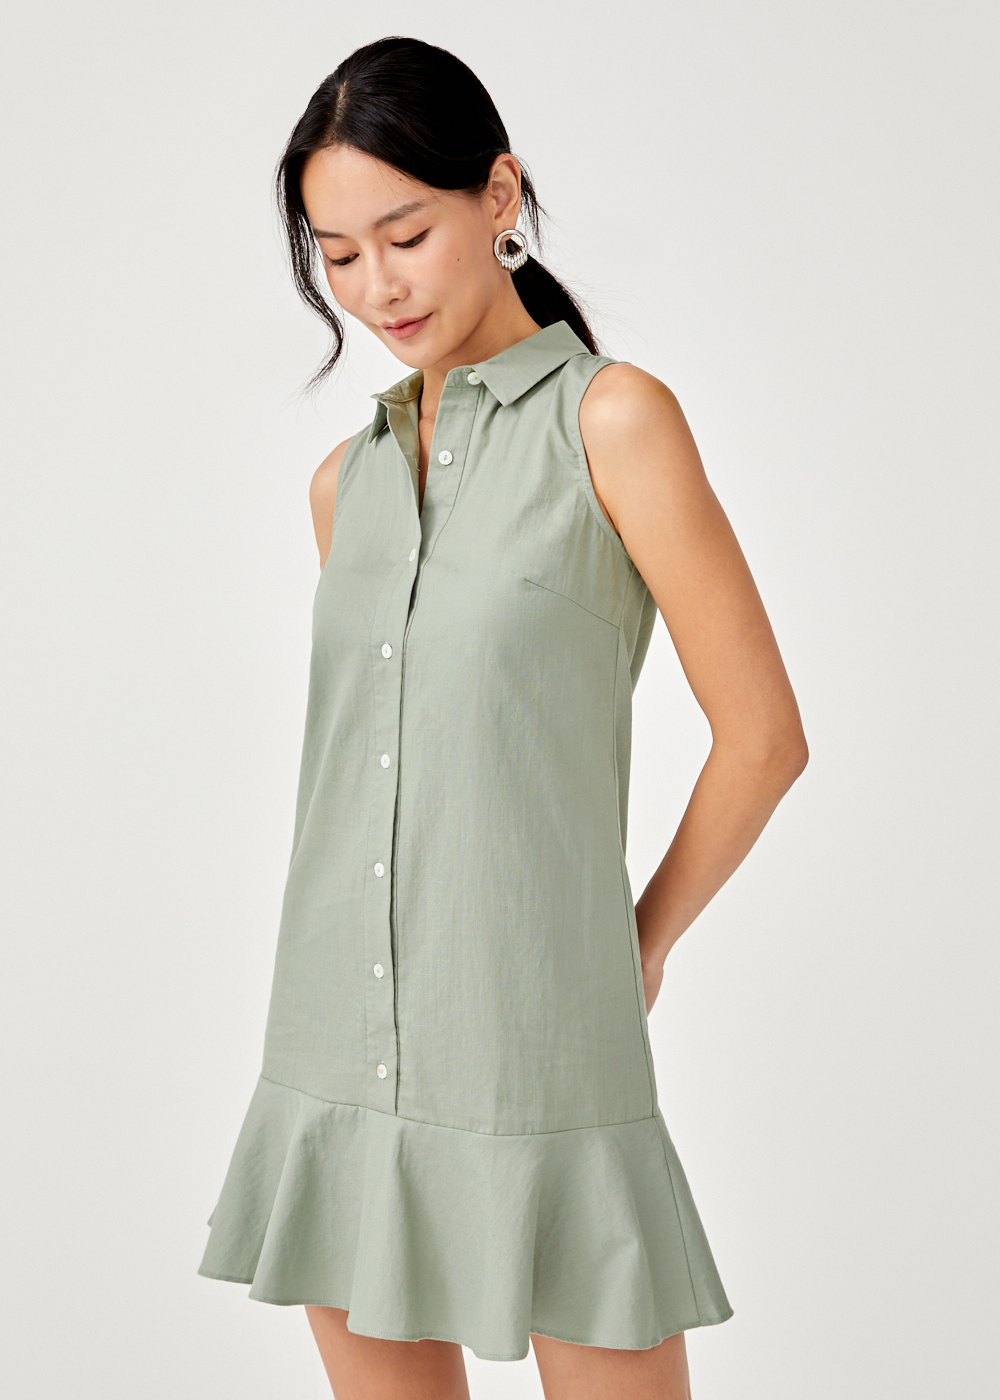 Pollette Drop Hem Sleeveless Shirt Dress